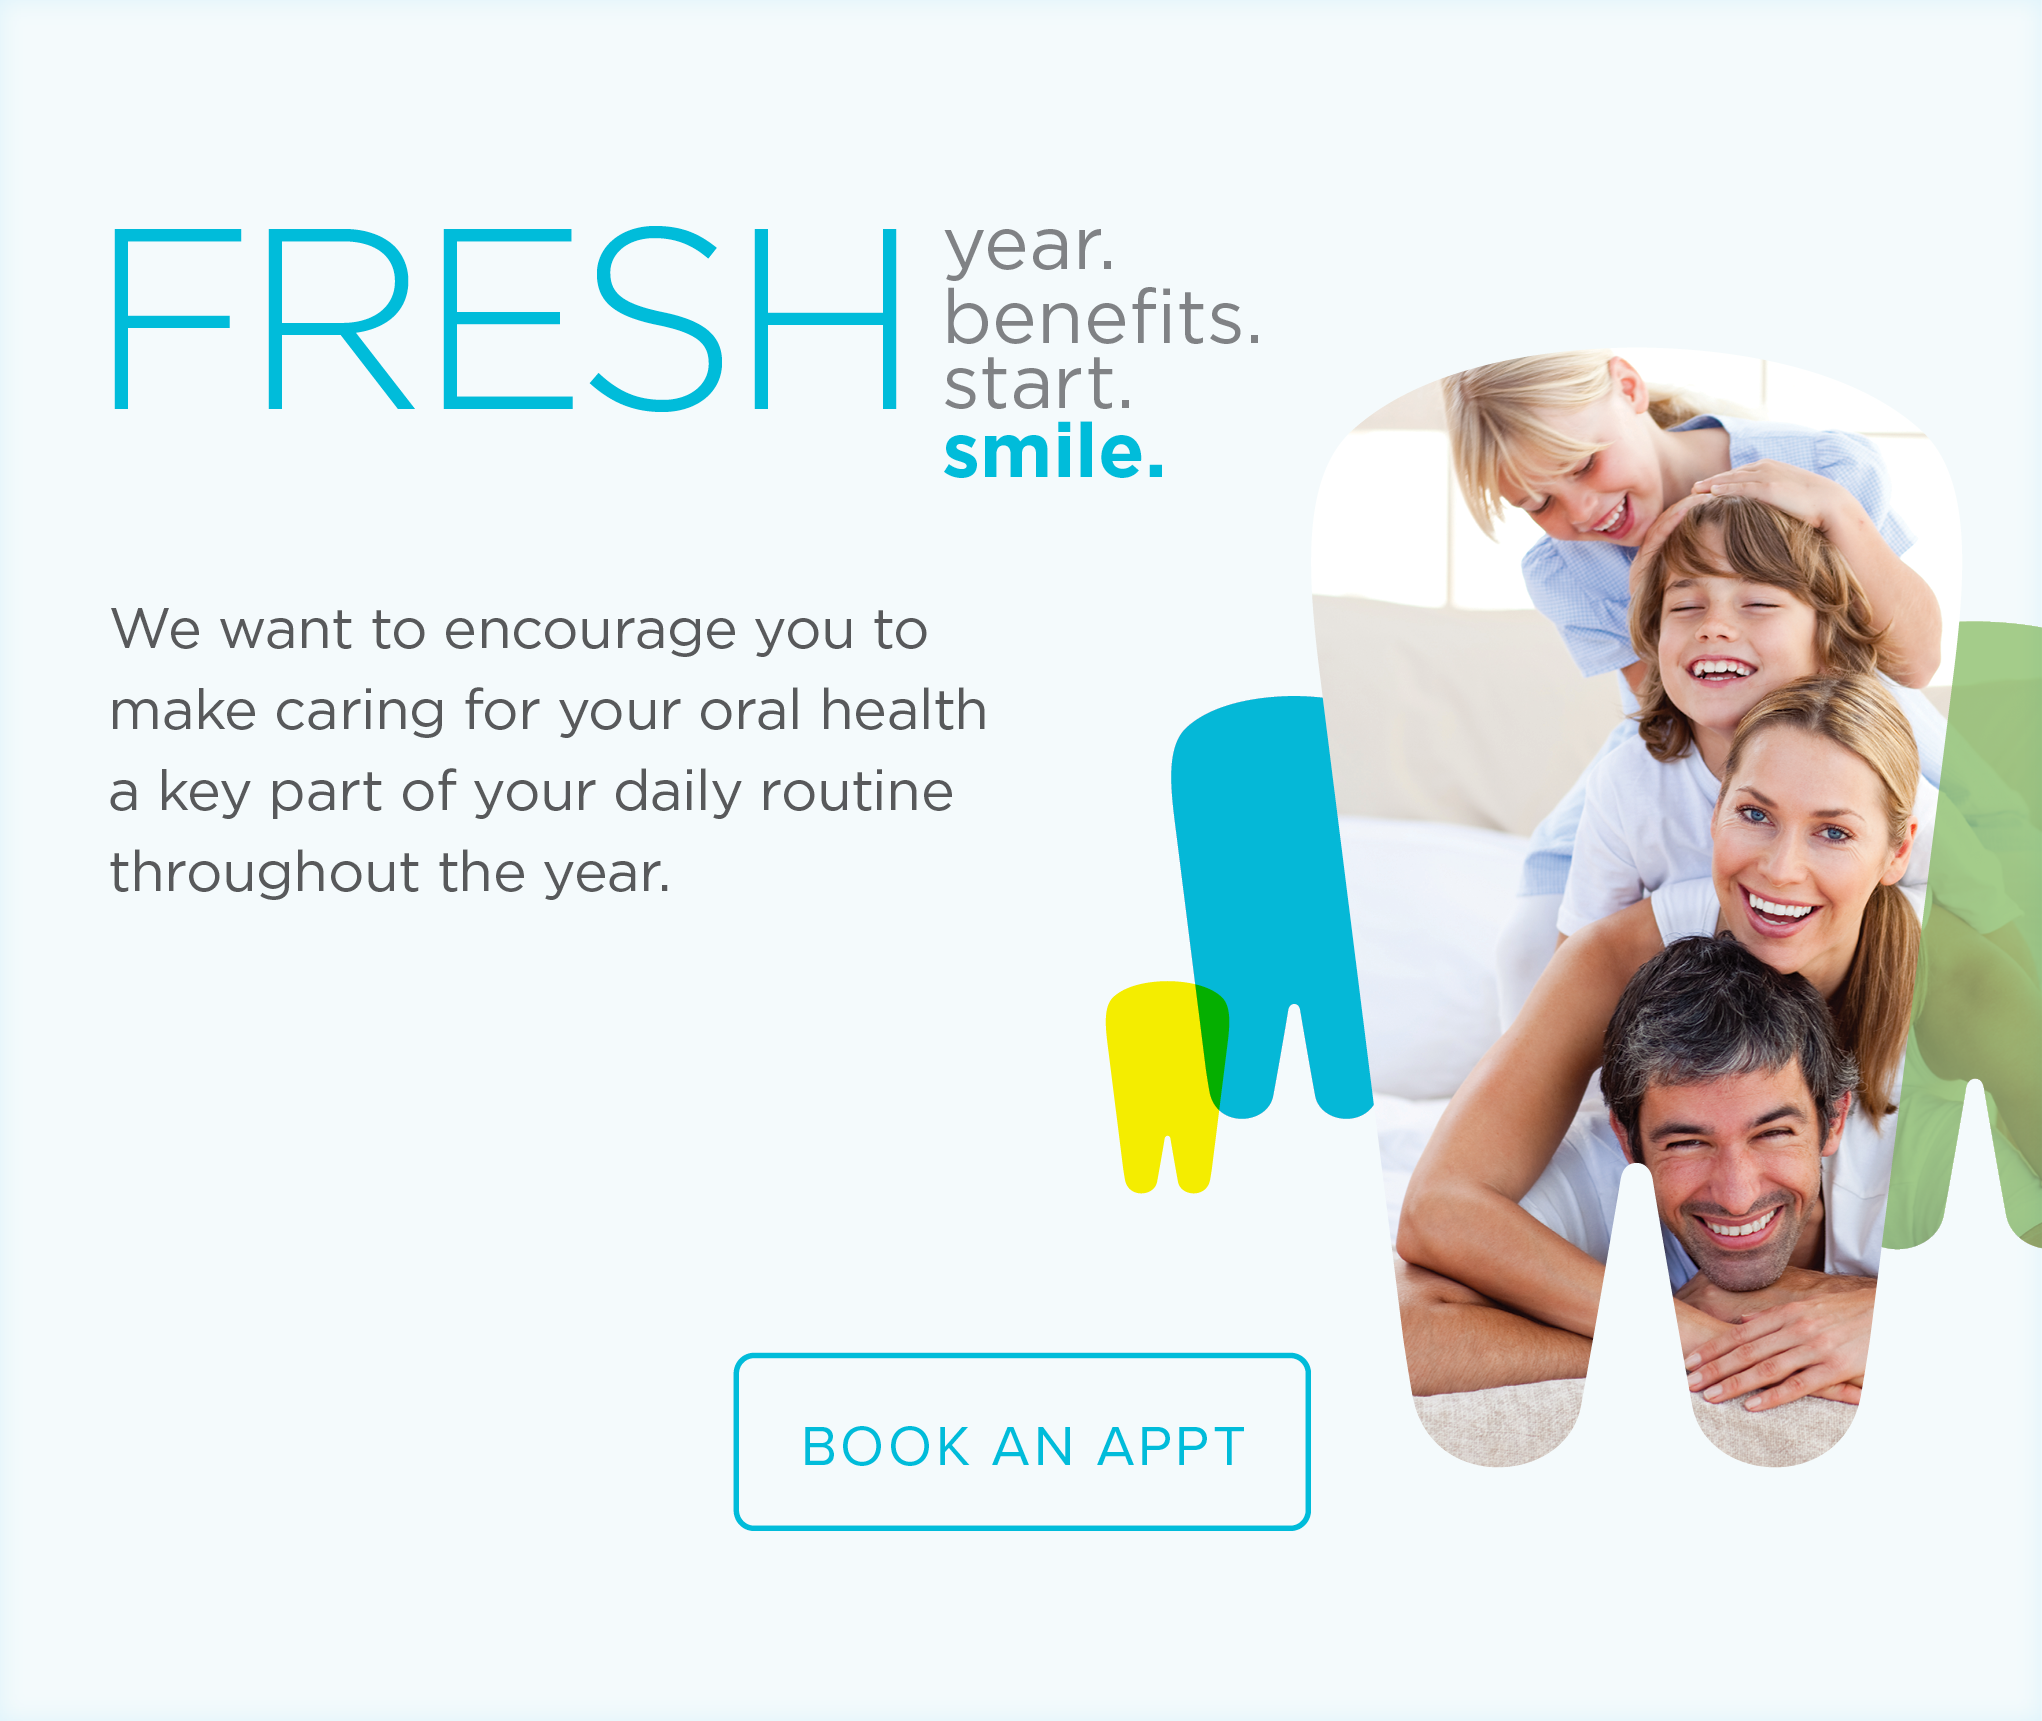 Gosford Village Dental Group - Make the Most of Your Benefits